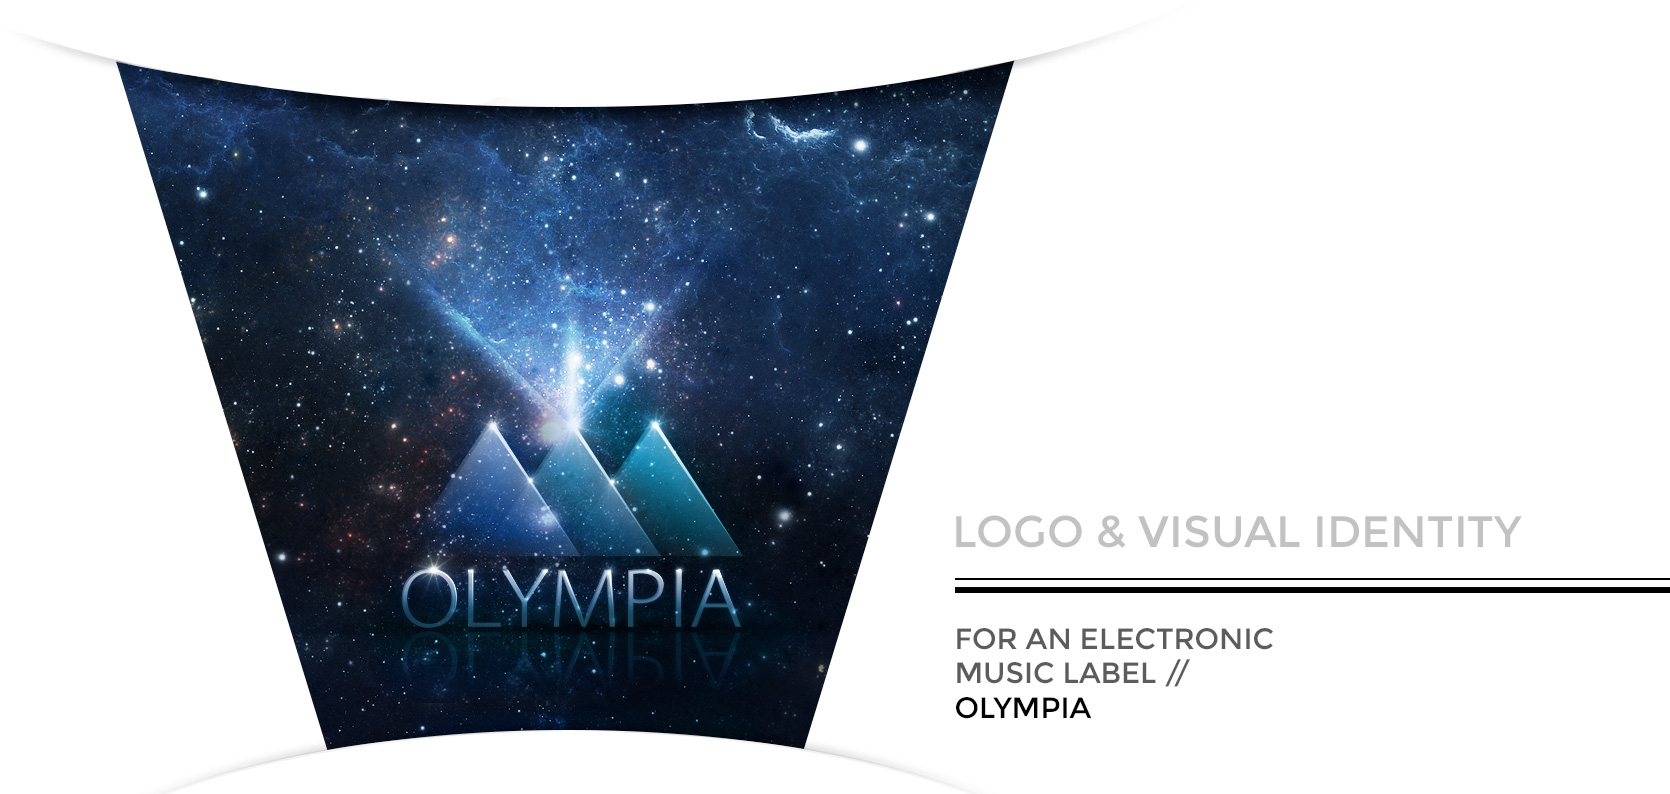 olympia logo agence montreal agency montréal